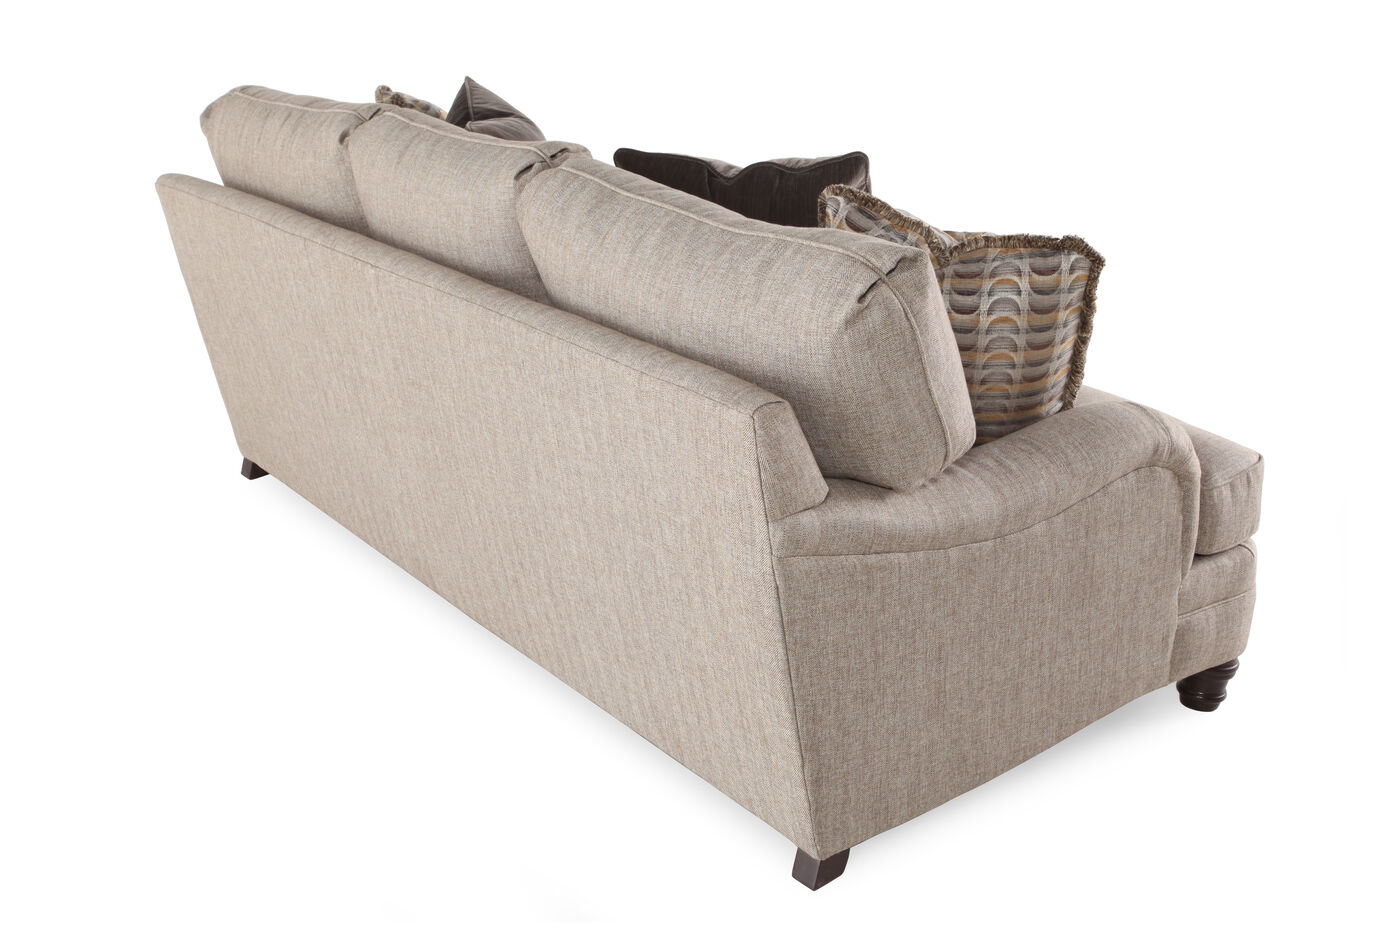 Bernhardt tarleton biege sofa mathis brothers furniture for Where to buy bernhardt furniture online